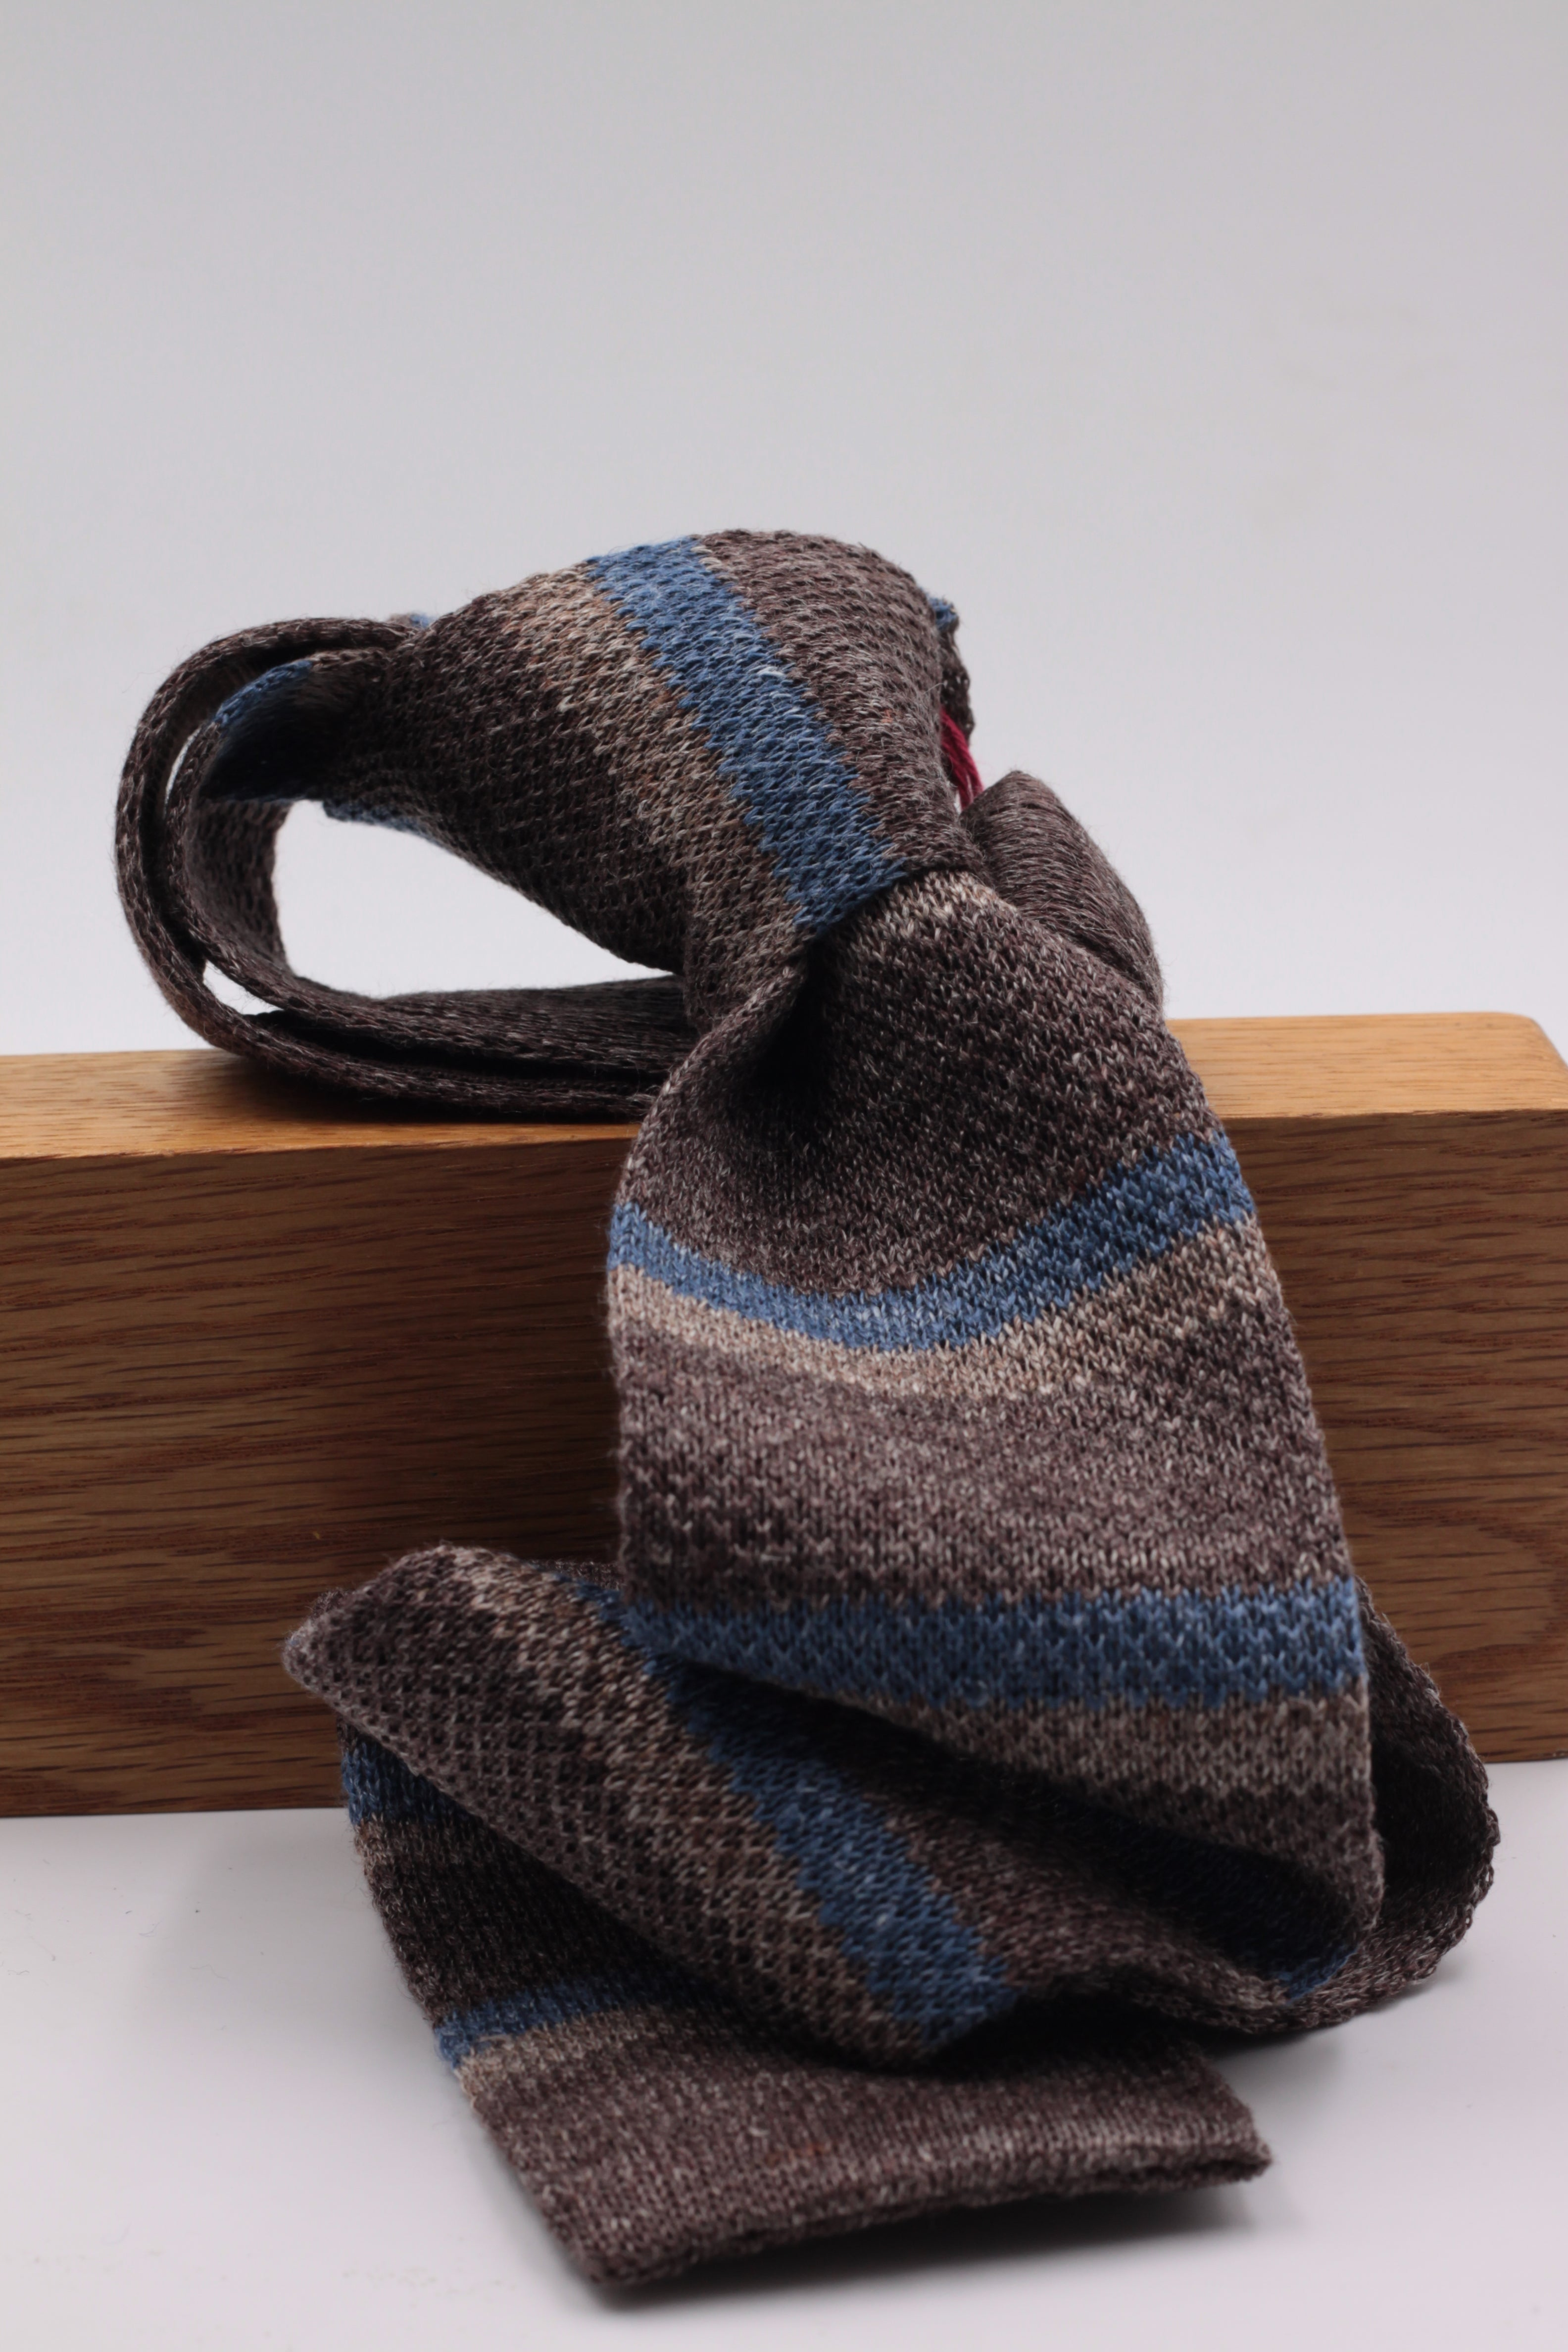 Cruciani & Bella 100% Knitted Linen Brown, Beige and Blue Jeans stripe tie Handmade in Italy 6 cm x 146 cm